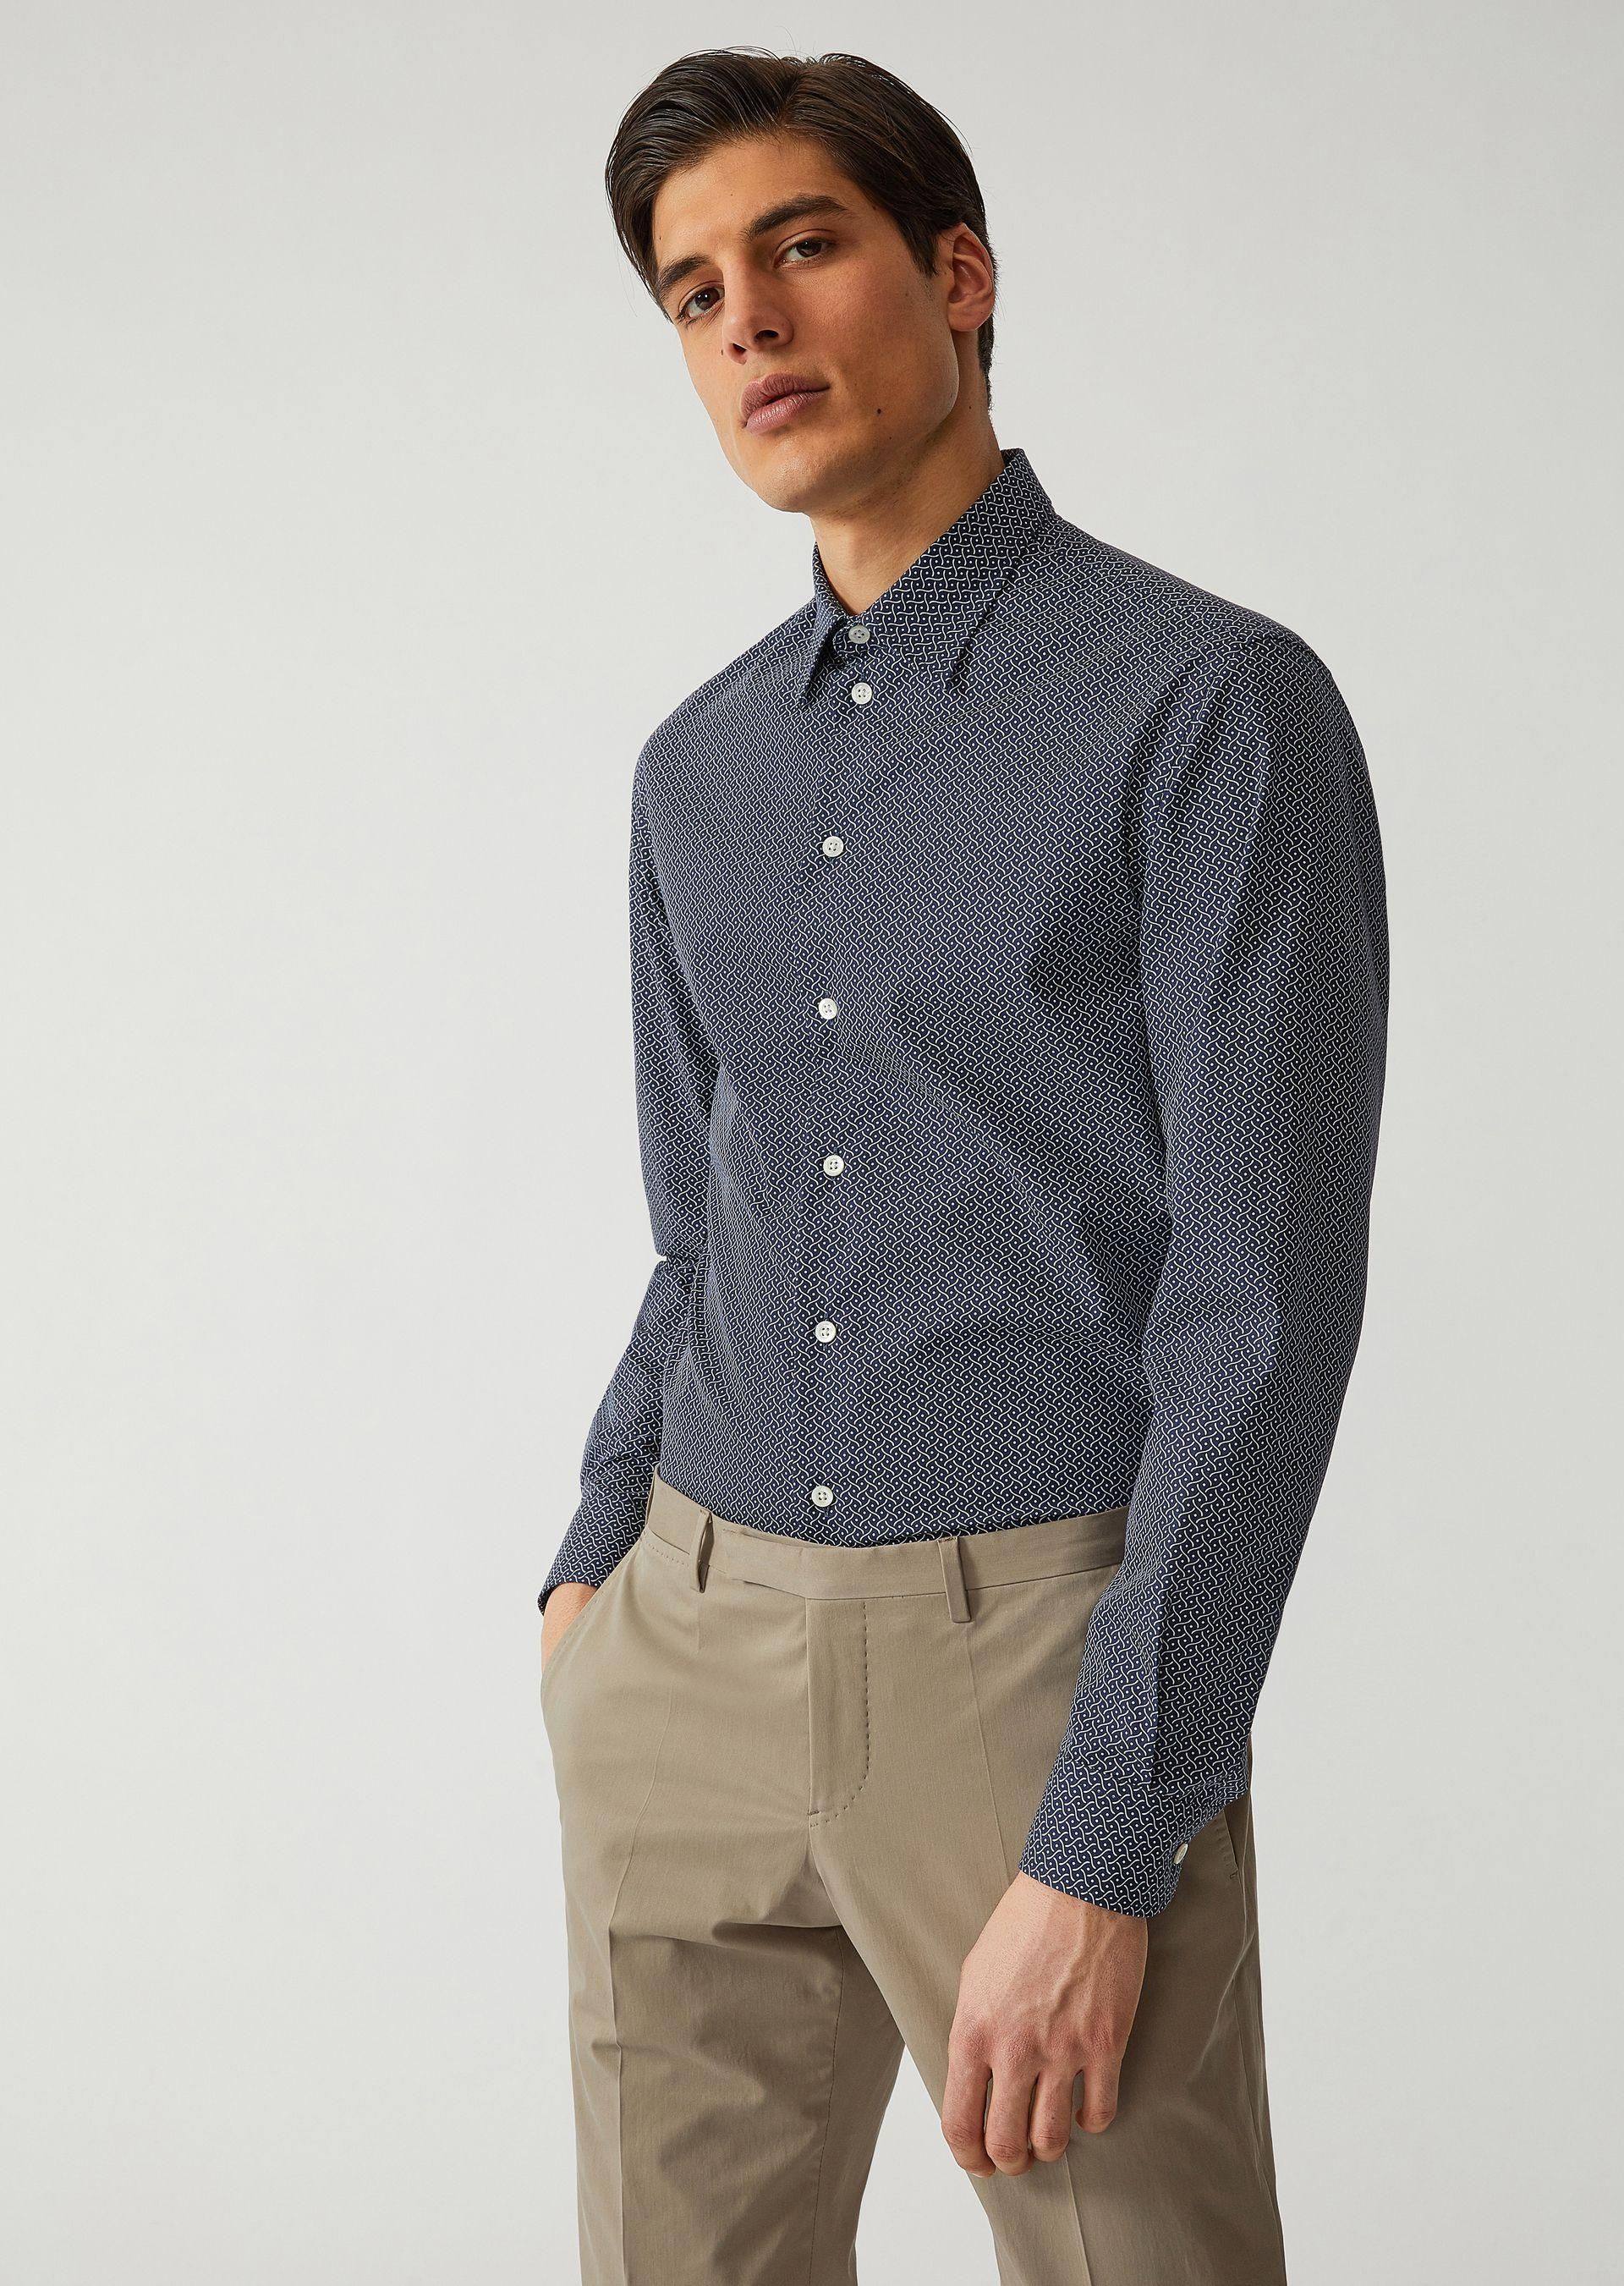 Emporio Armani Casual Shirts - Item 38719732 In Pattern